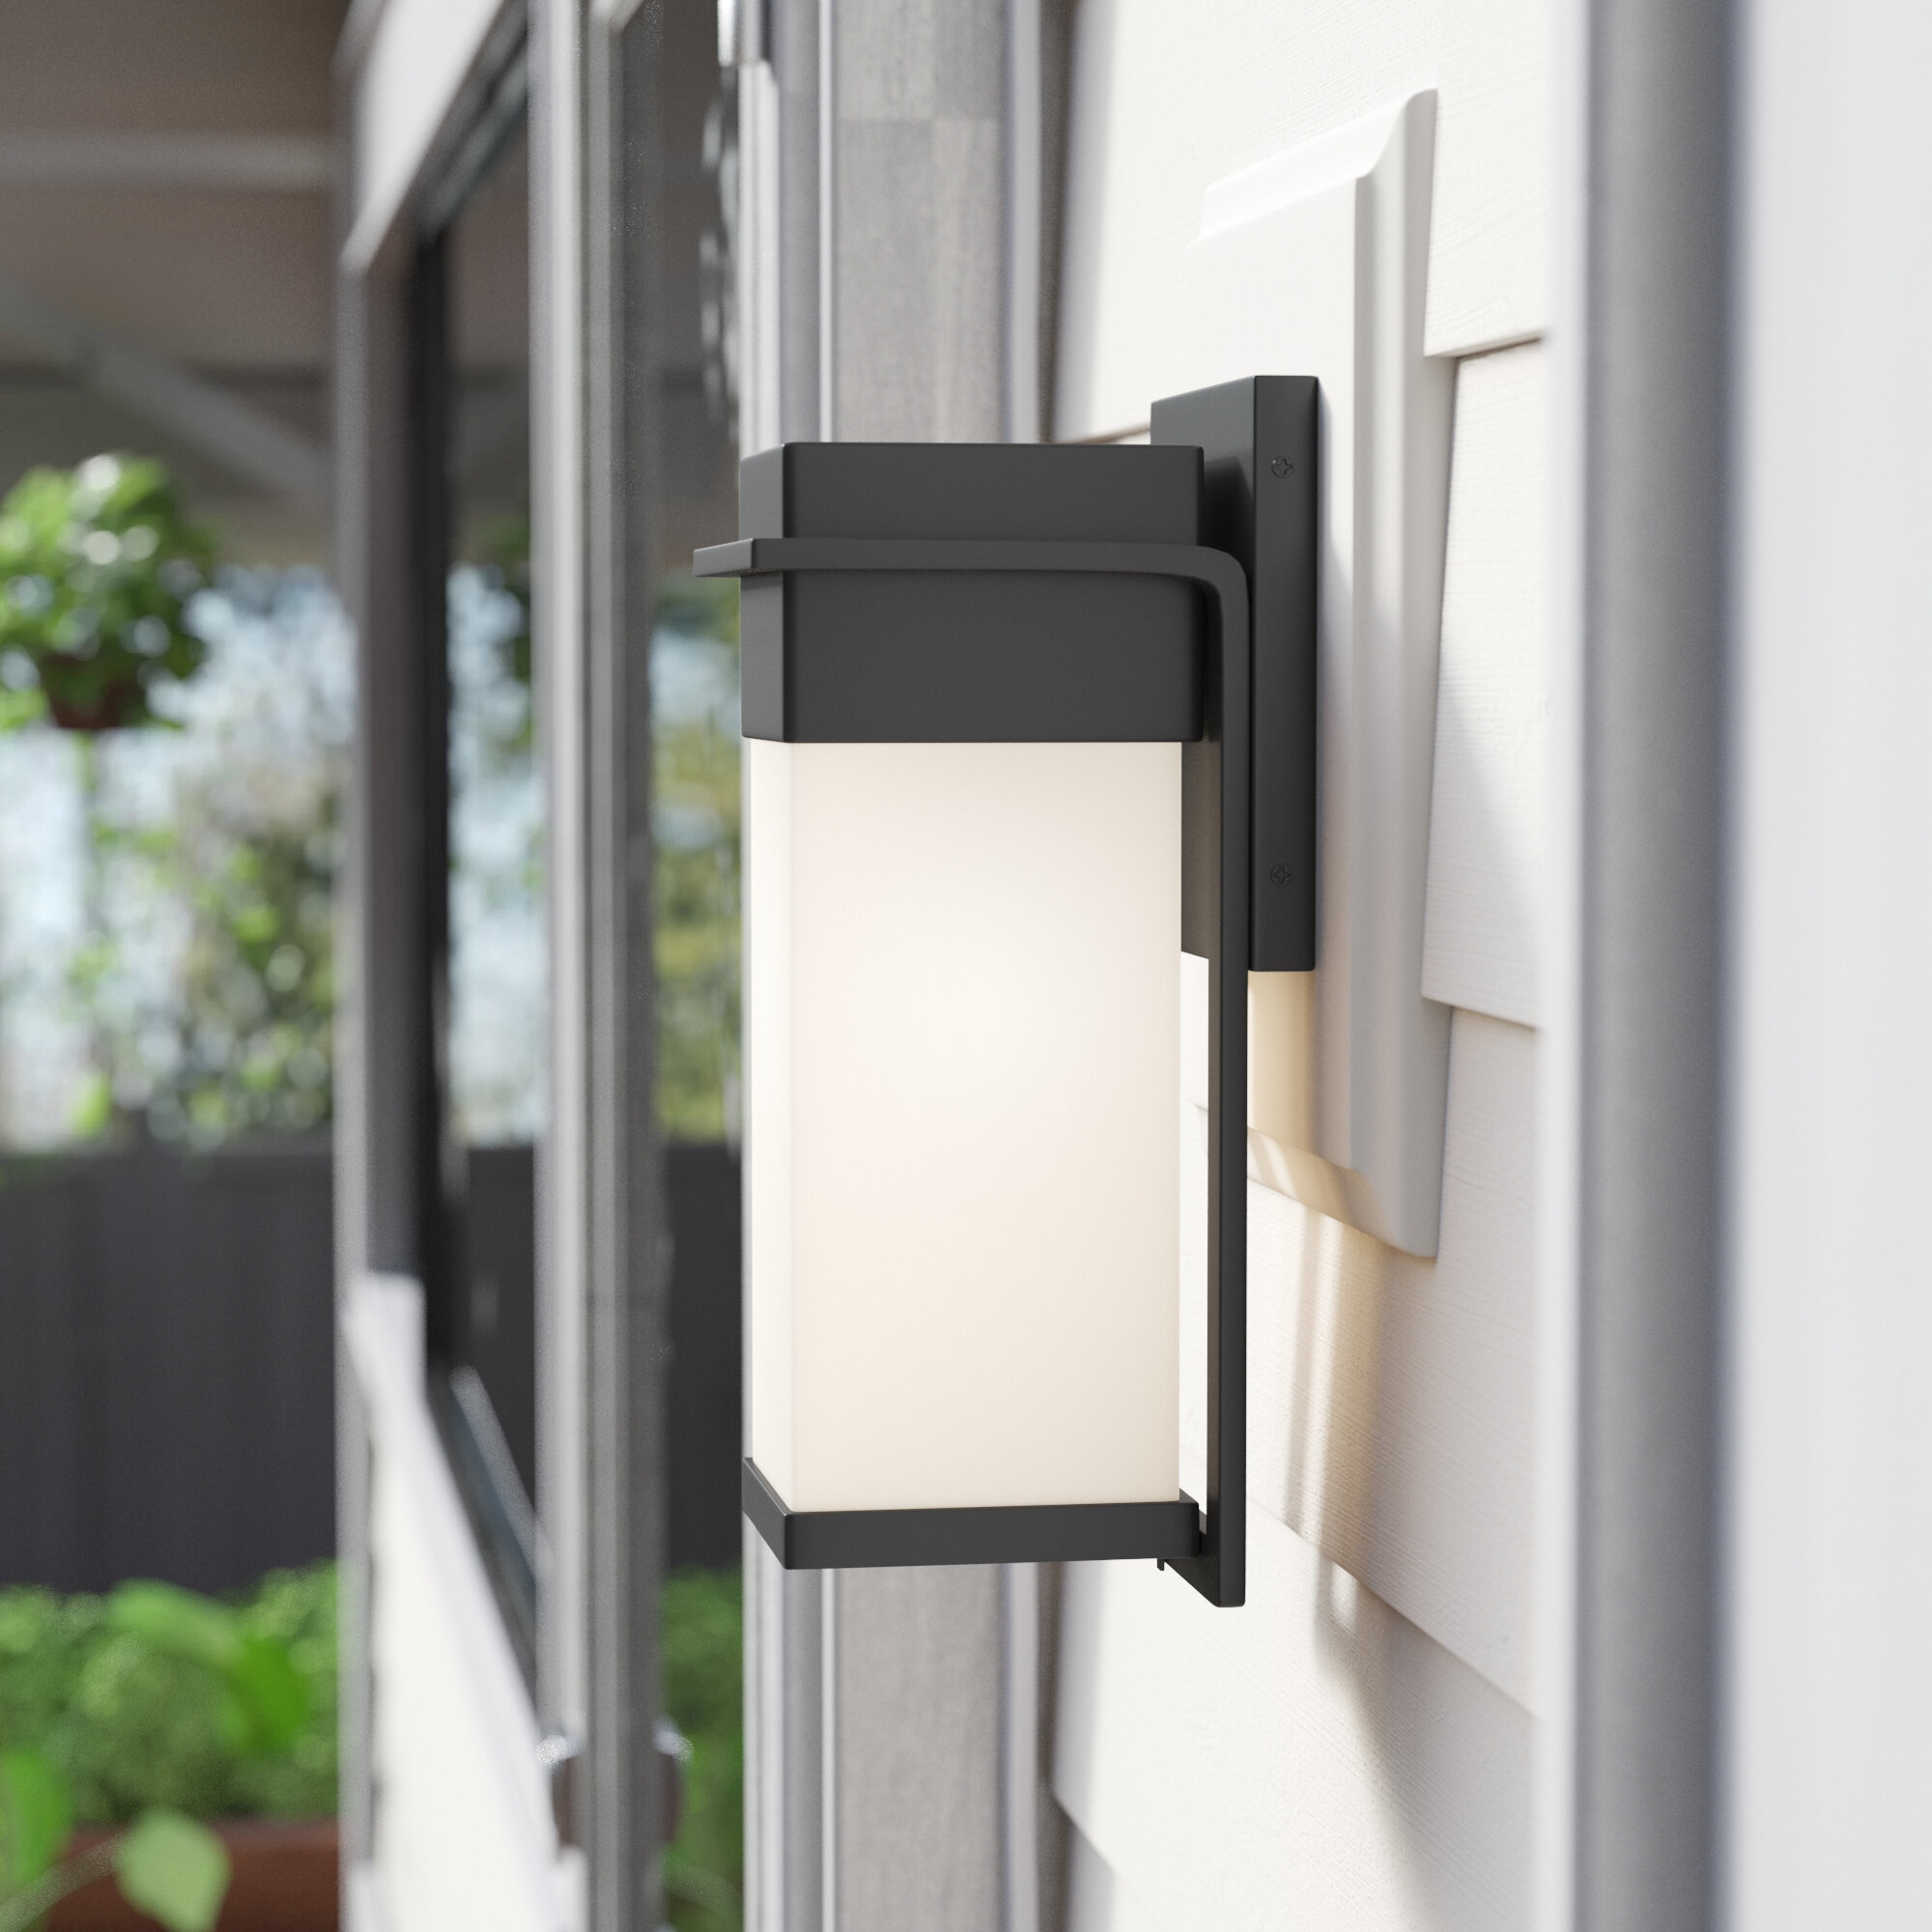 Brayden Studio Luzerne Led Outdoor Armed Sconce Wayfair